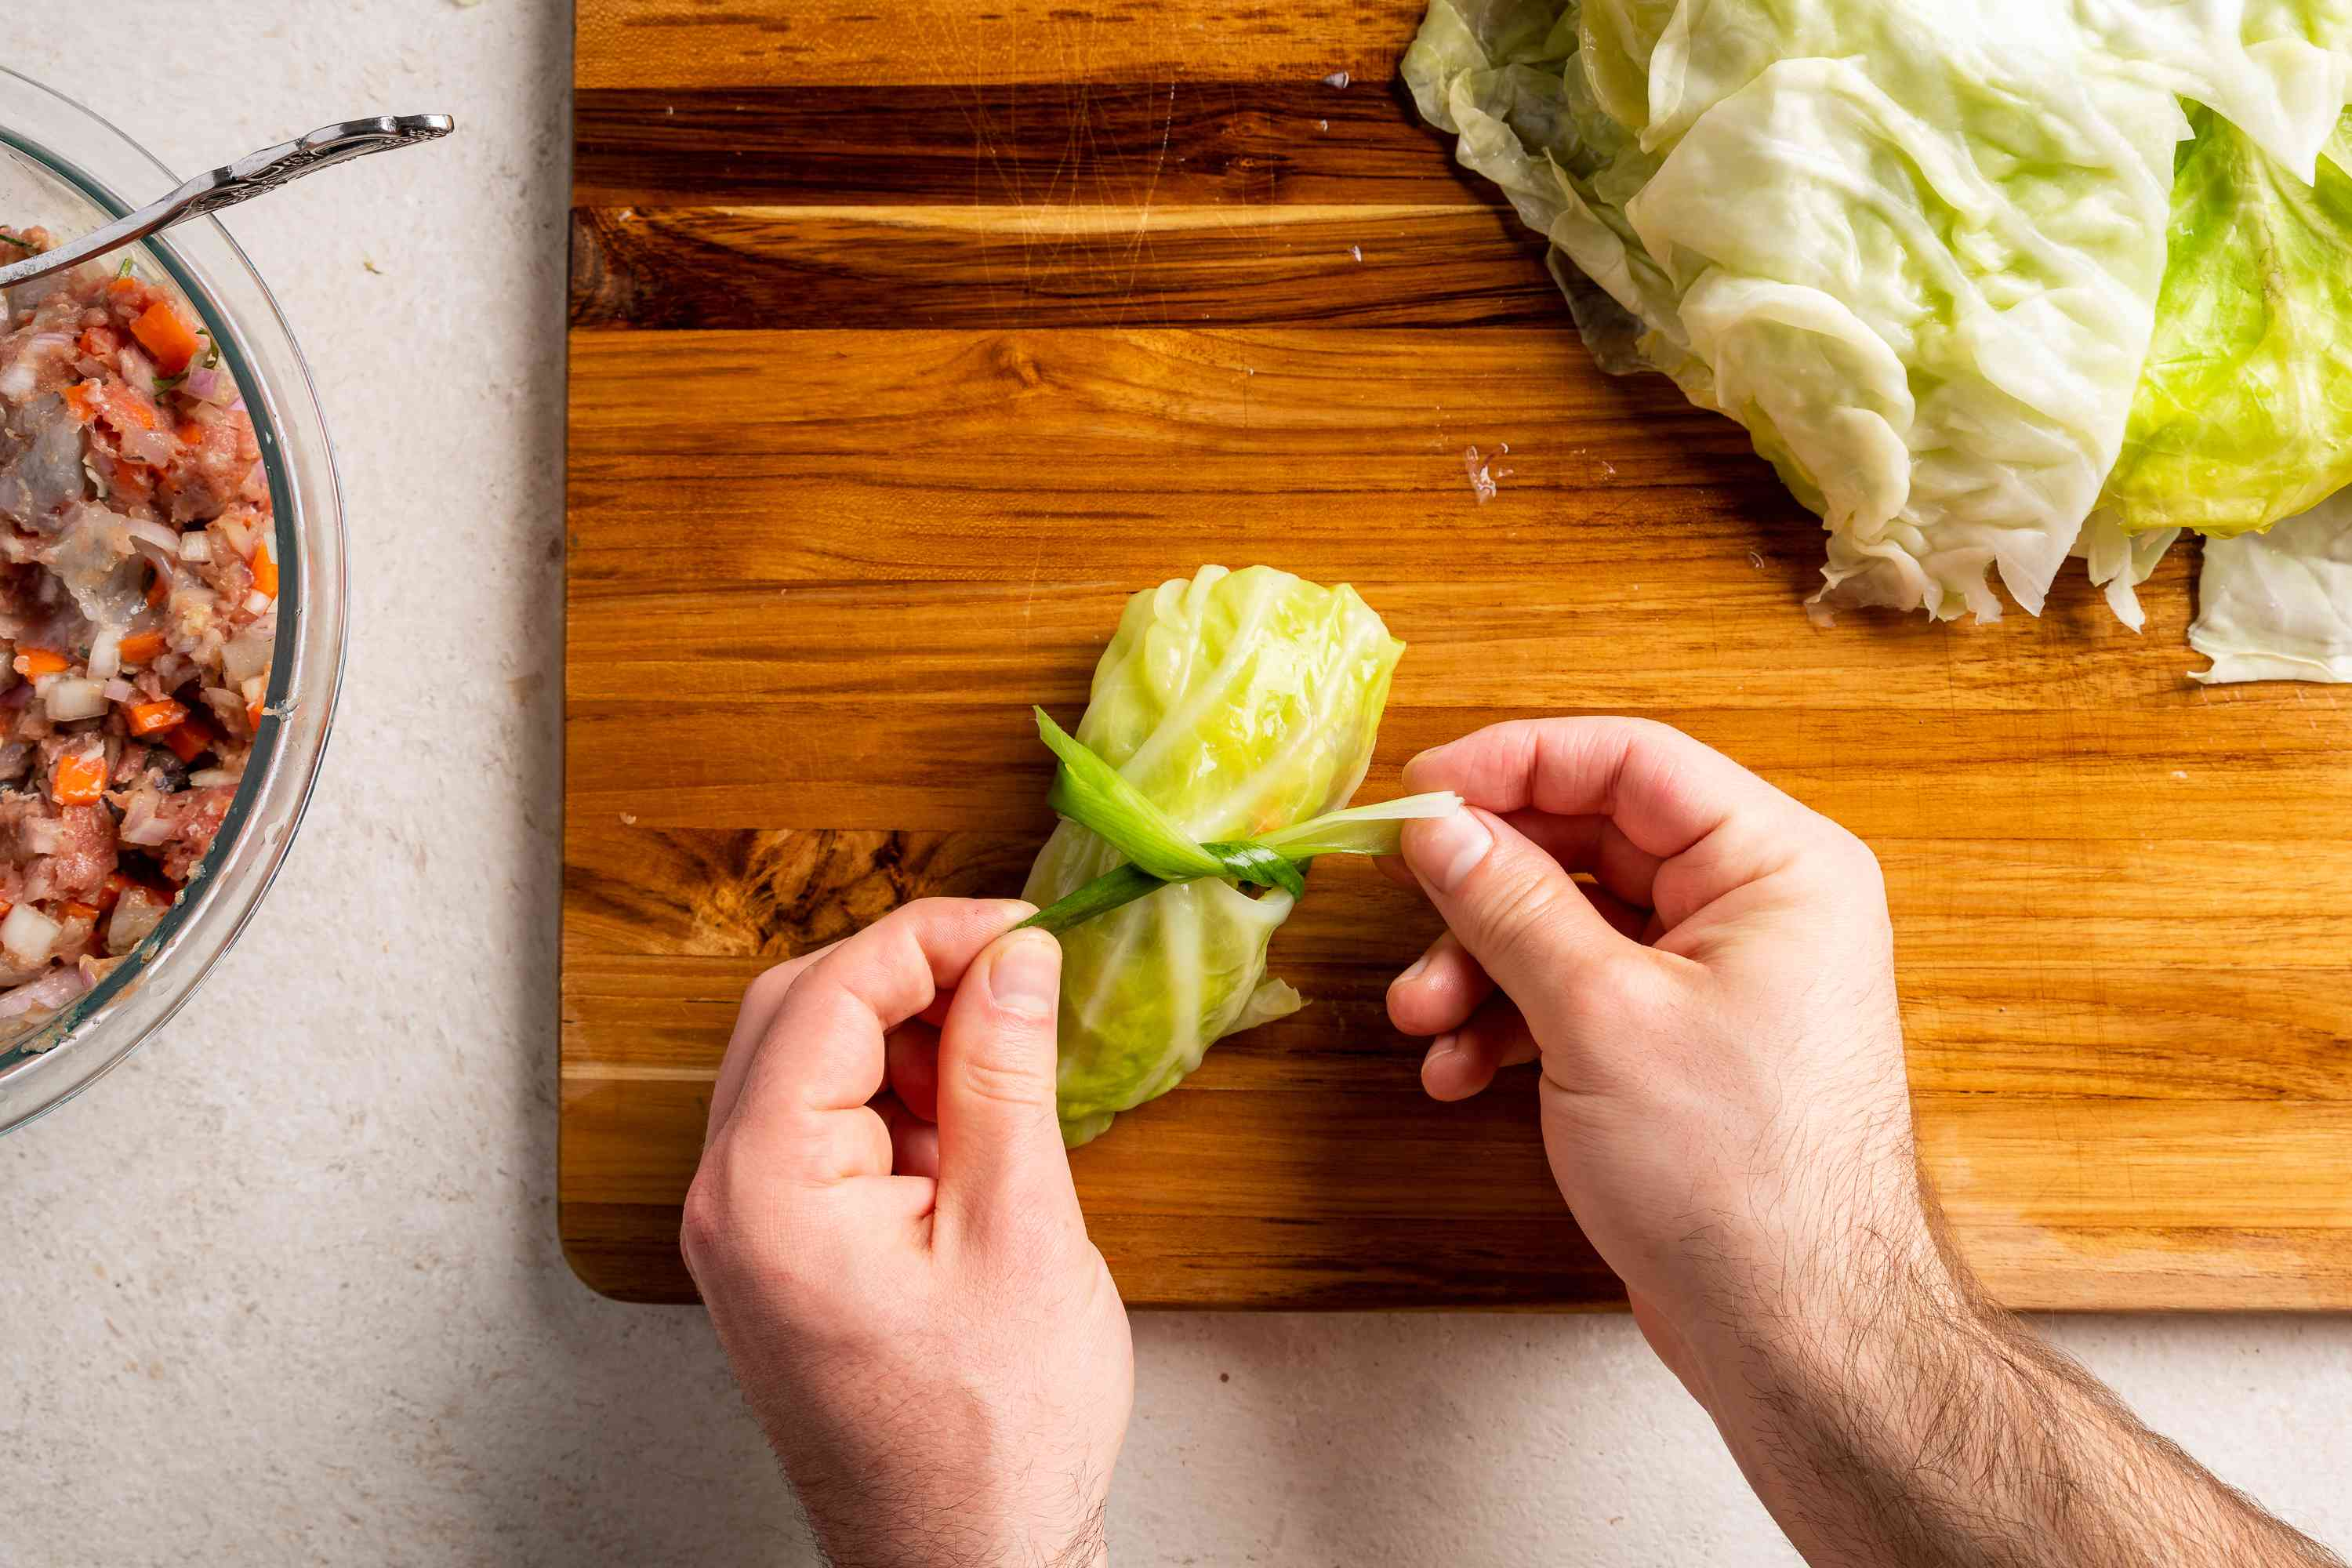 Take a scallion and use it to tie the cabbage roll